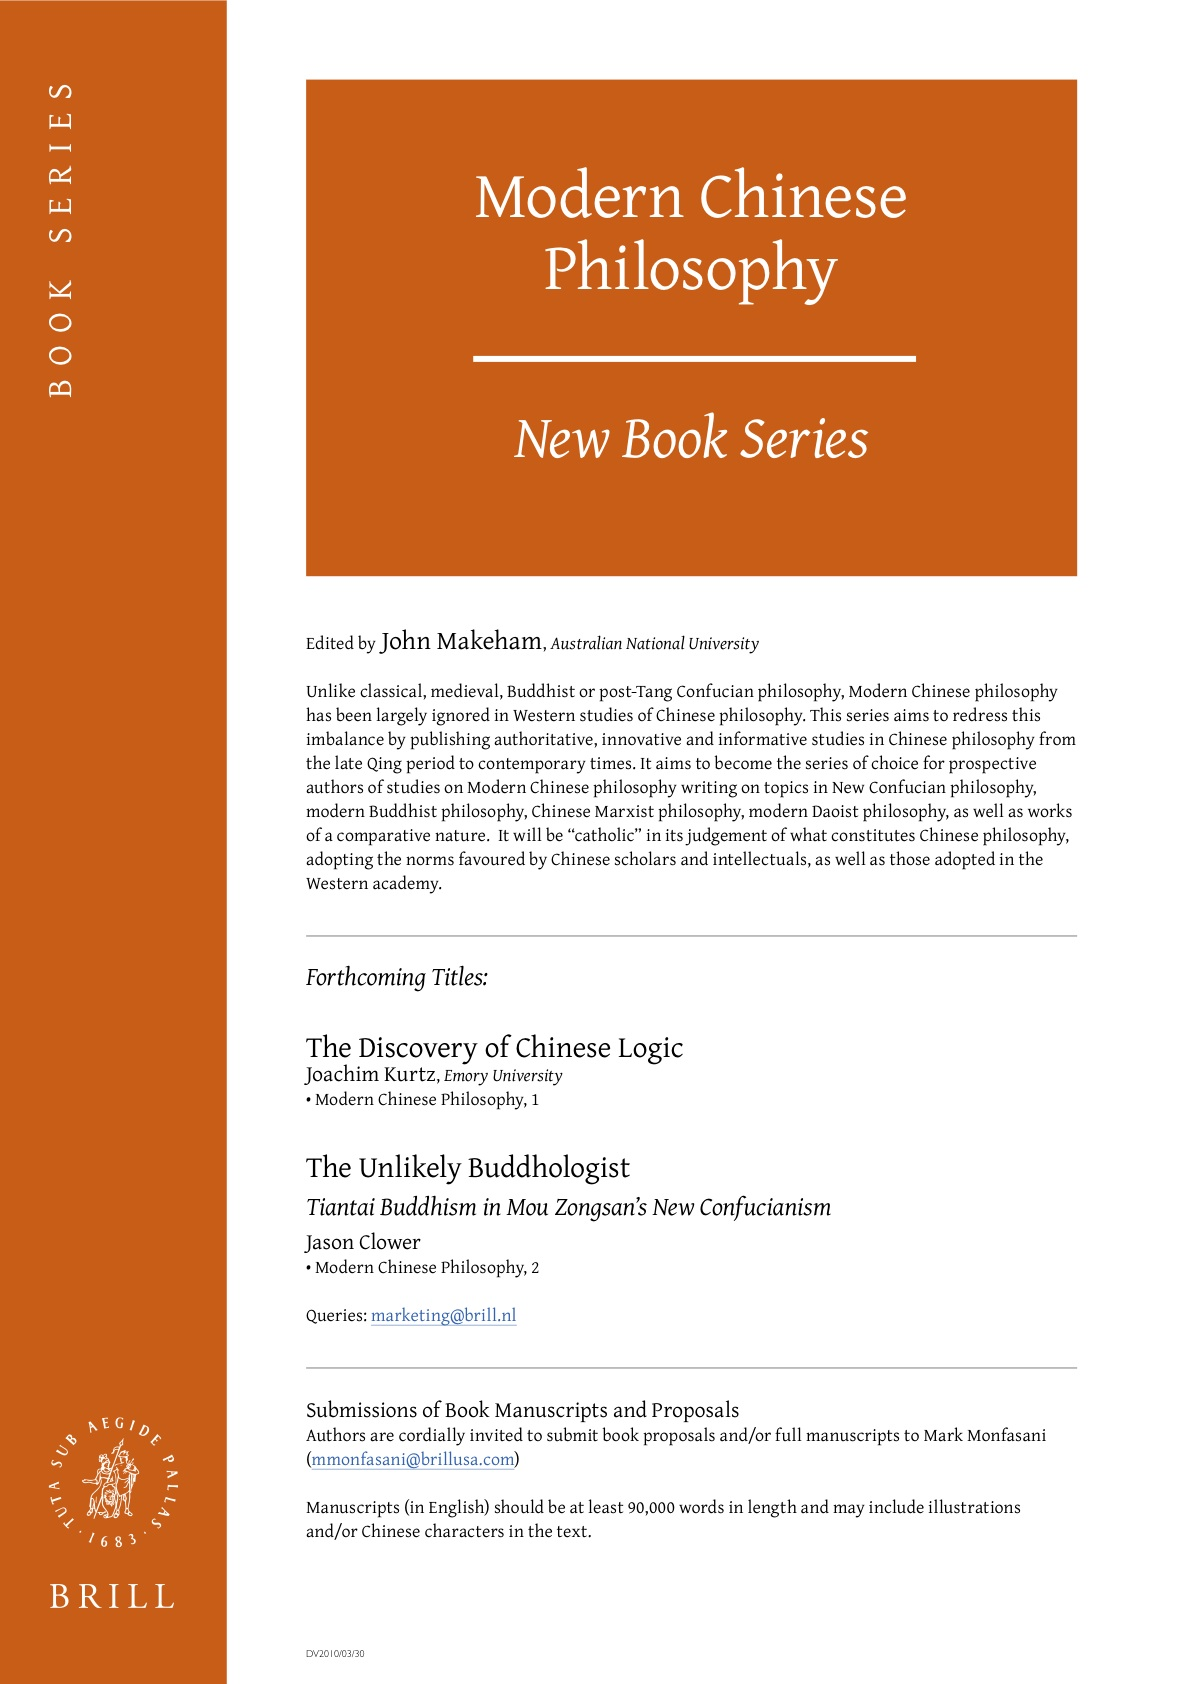 an overview of confucian philosophy Confucius: the analects book analysis the analects , written and compiled by some of the world's greatest ancient thinkers is the basis of chinese and east asian intellectual thought the writing is a collection of confucius' teachings and concepts later rectified by his pupils shortly after his death.